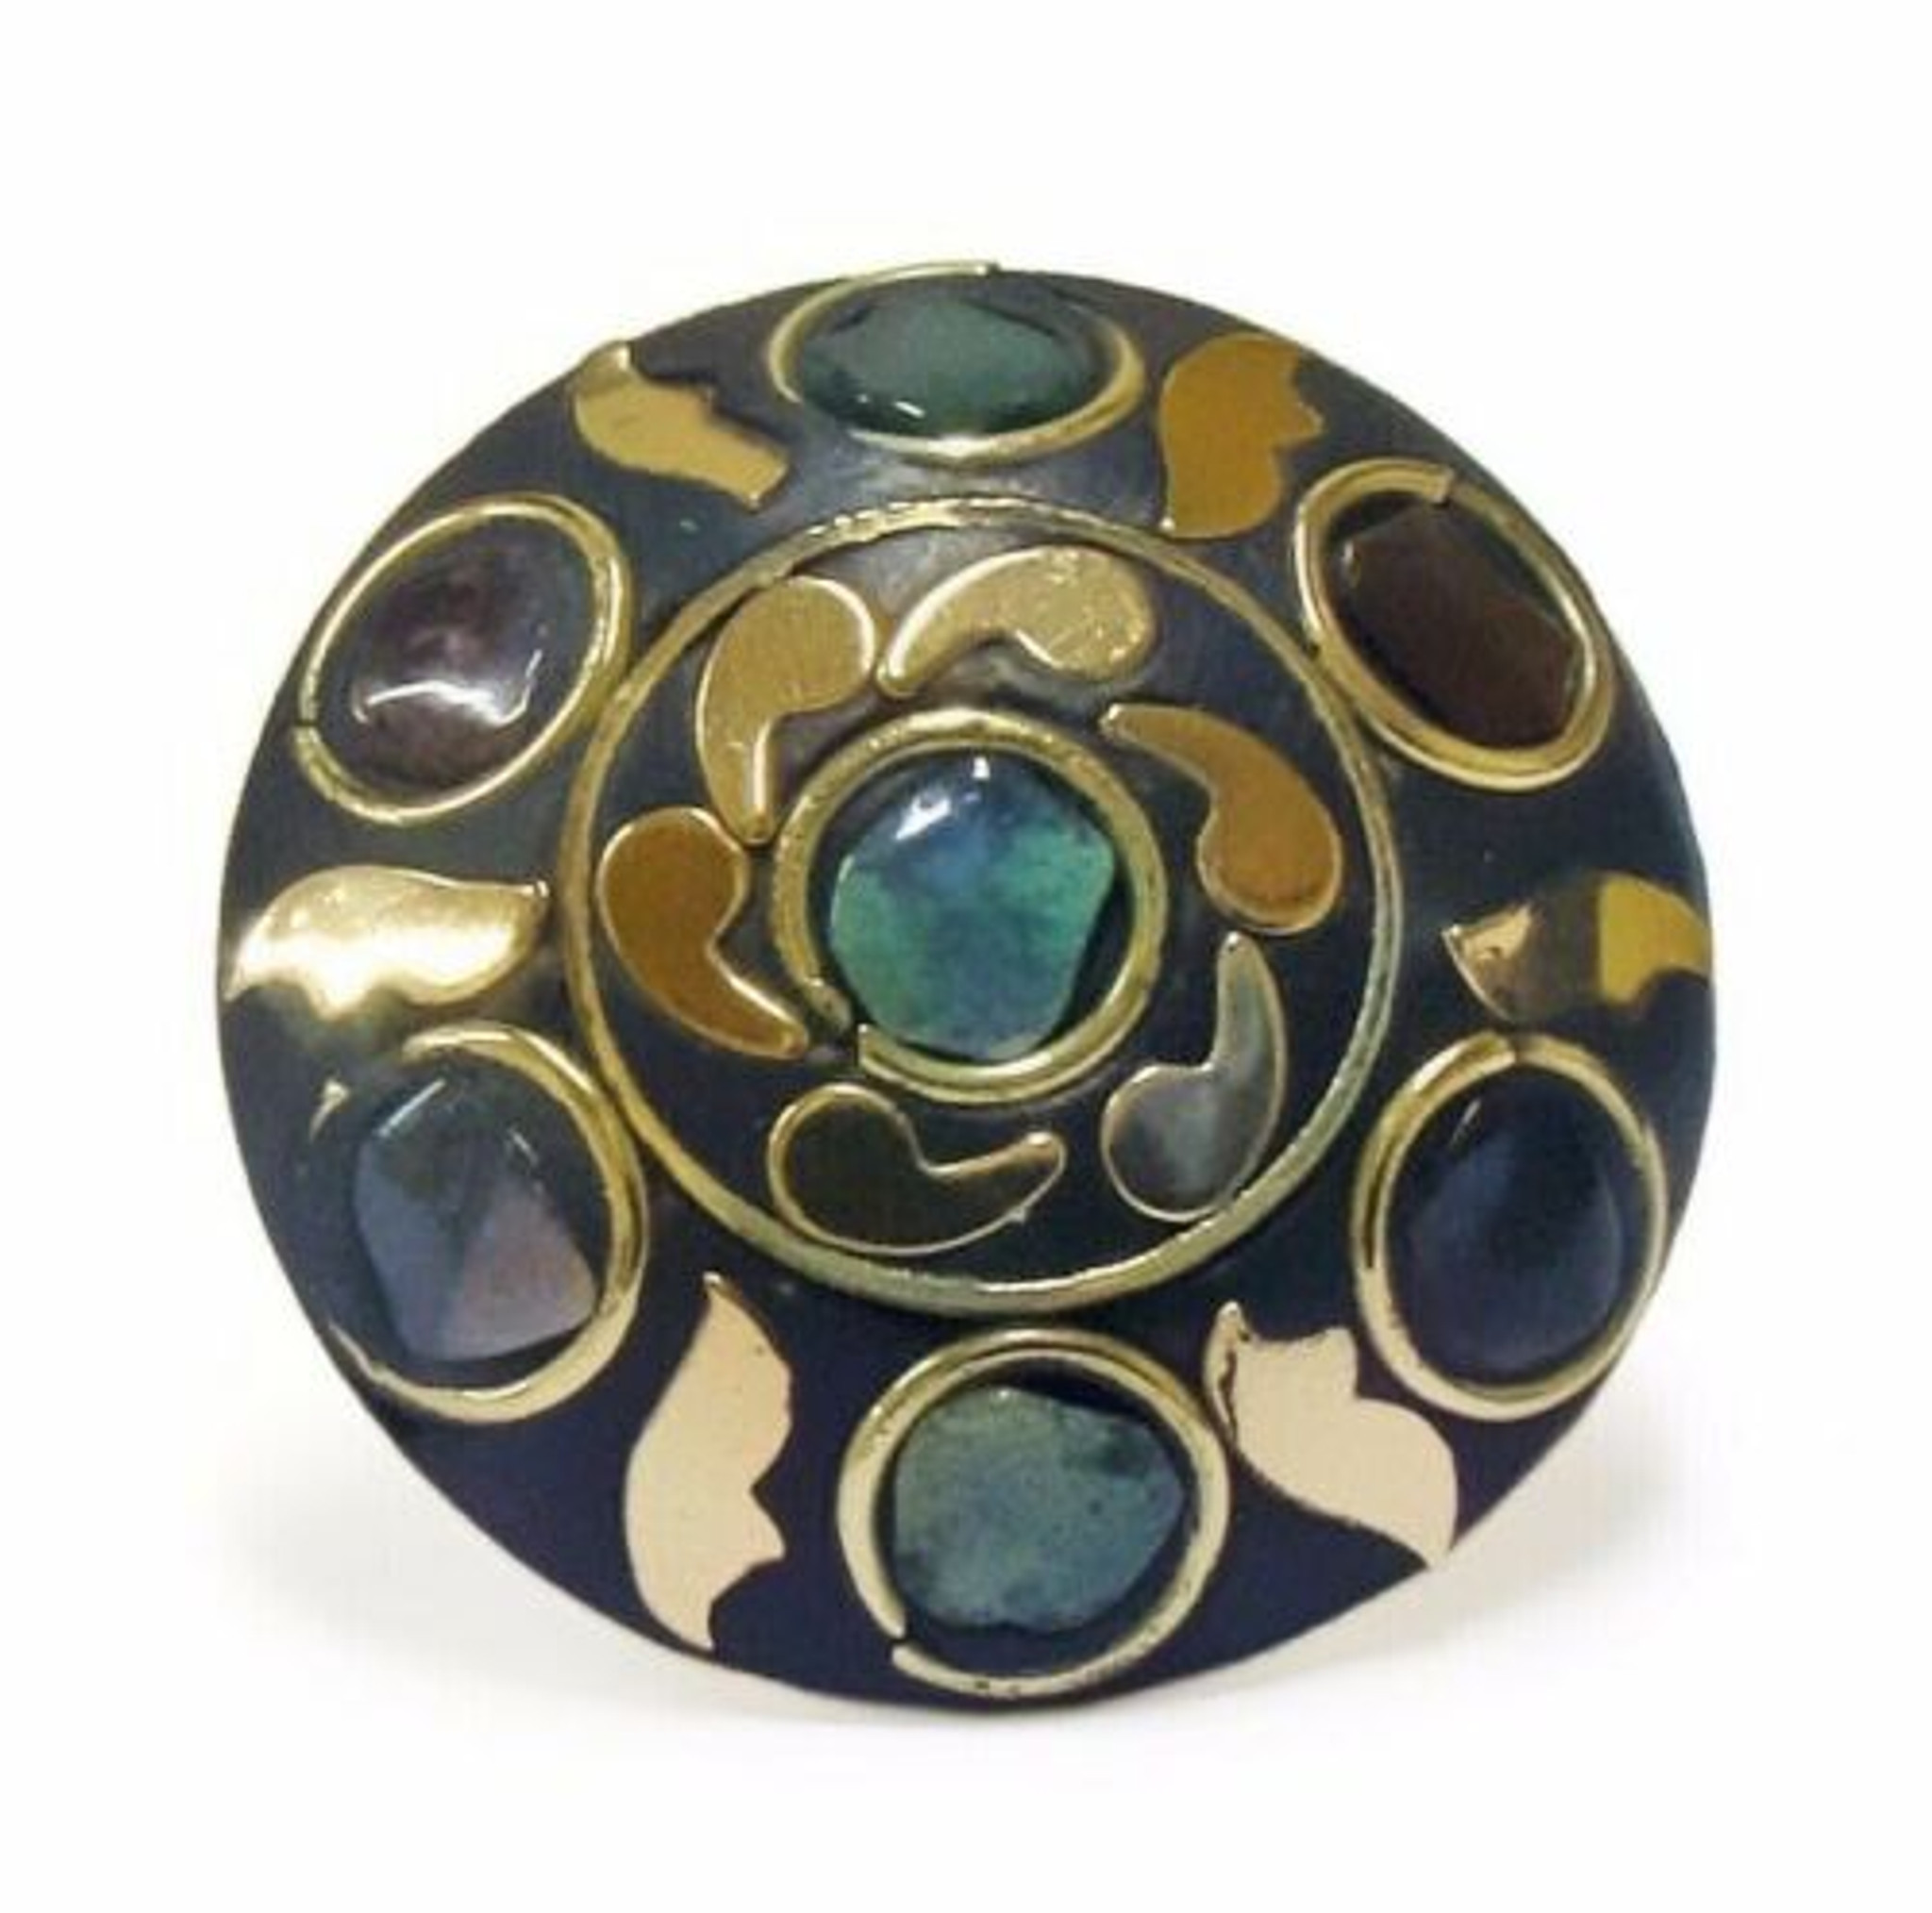 Terracotta and Mosaic Ring - Turquoise Tone Chips